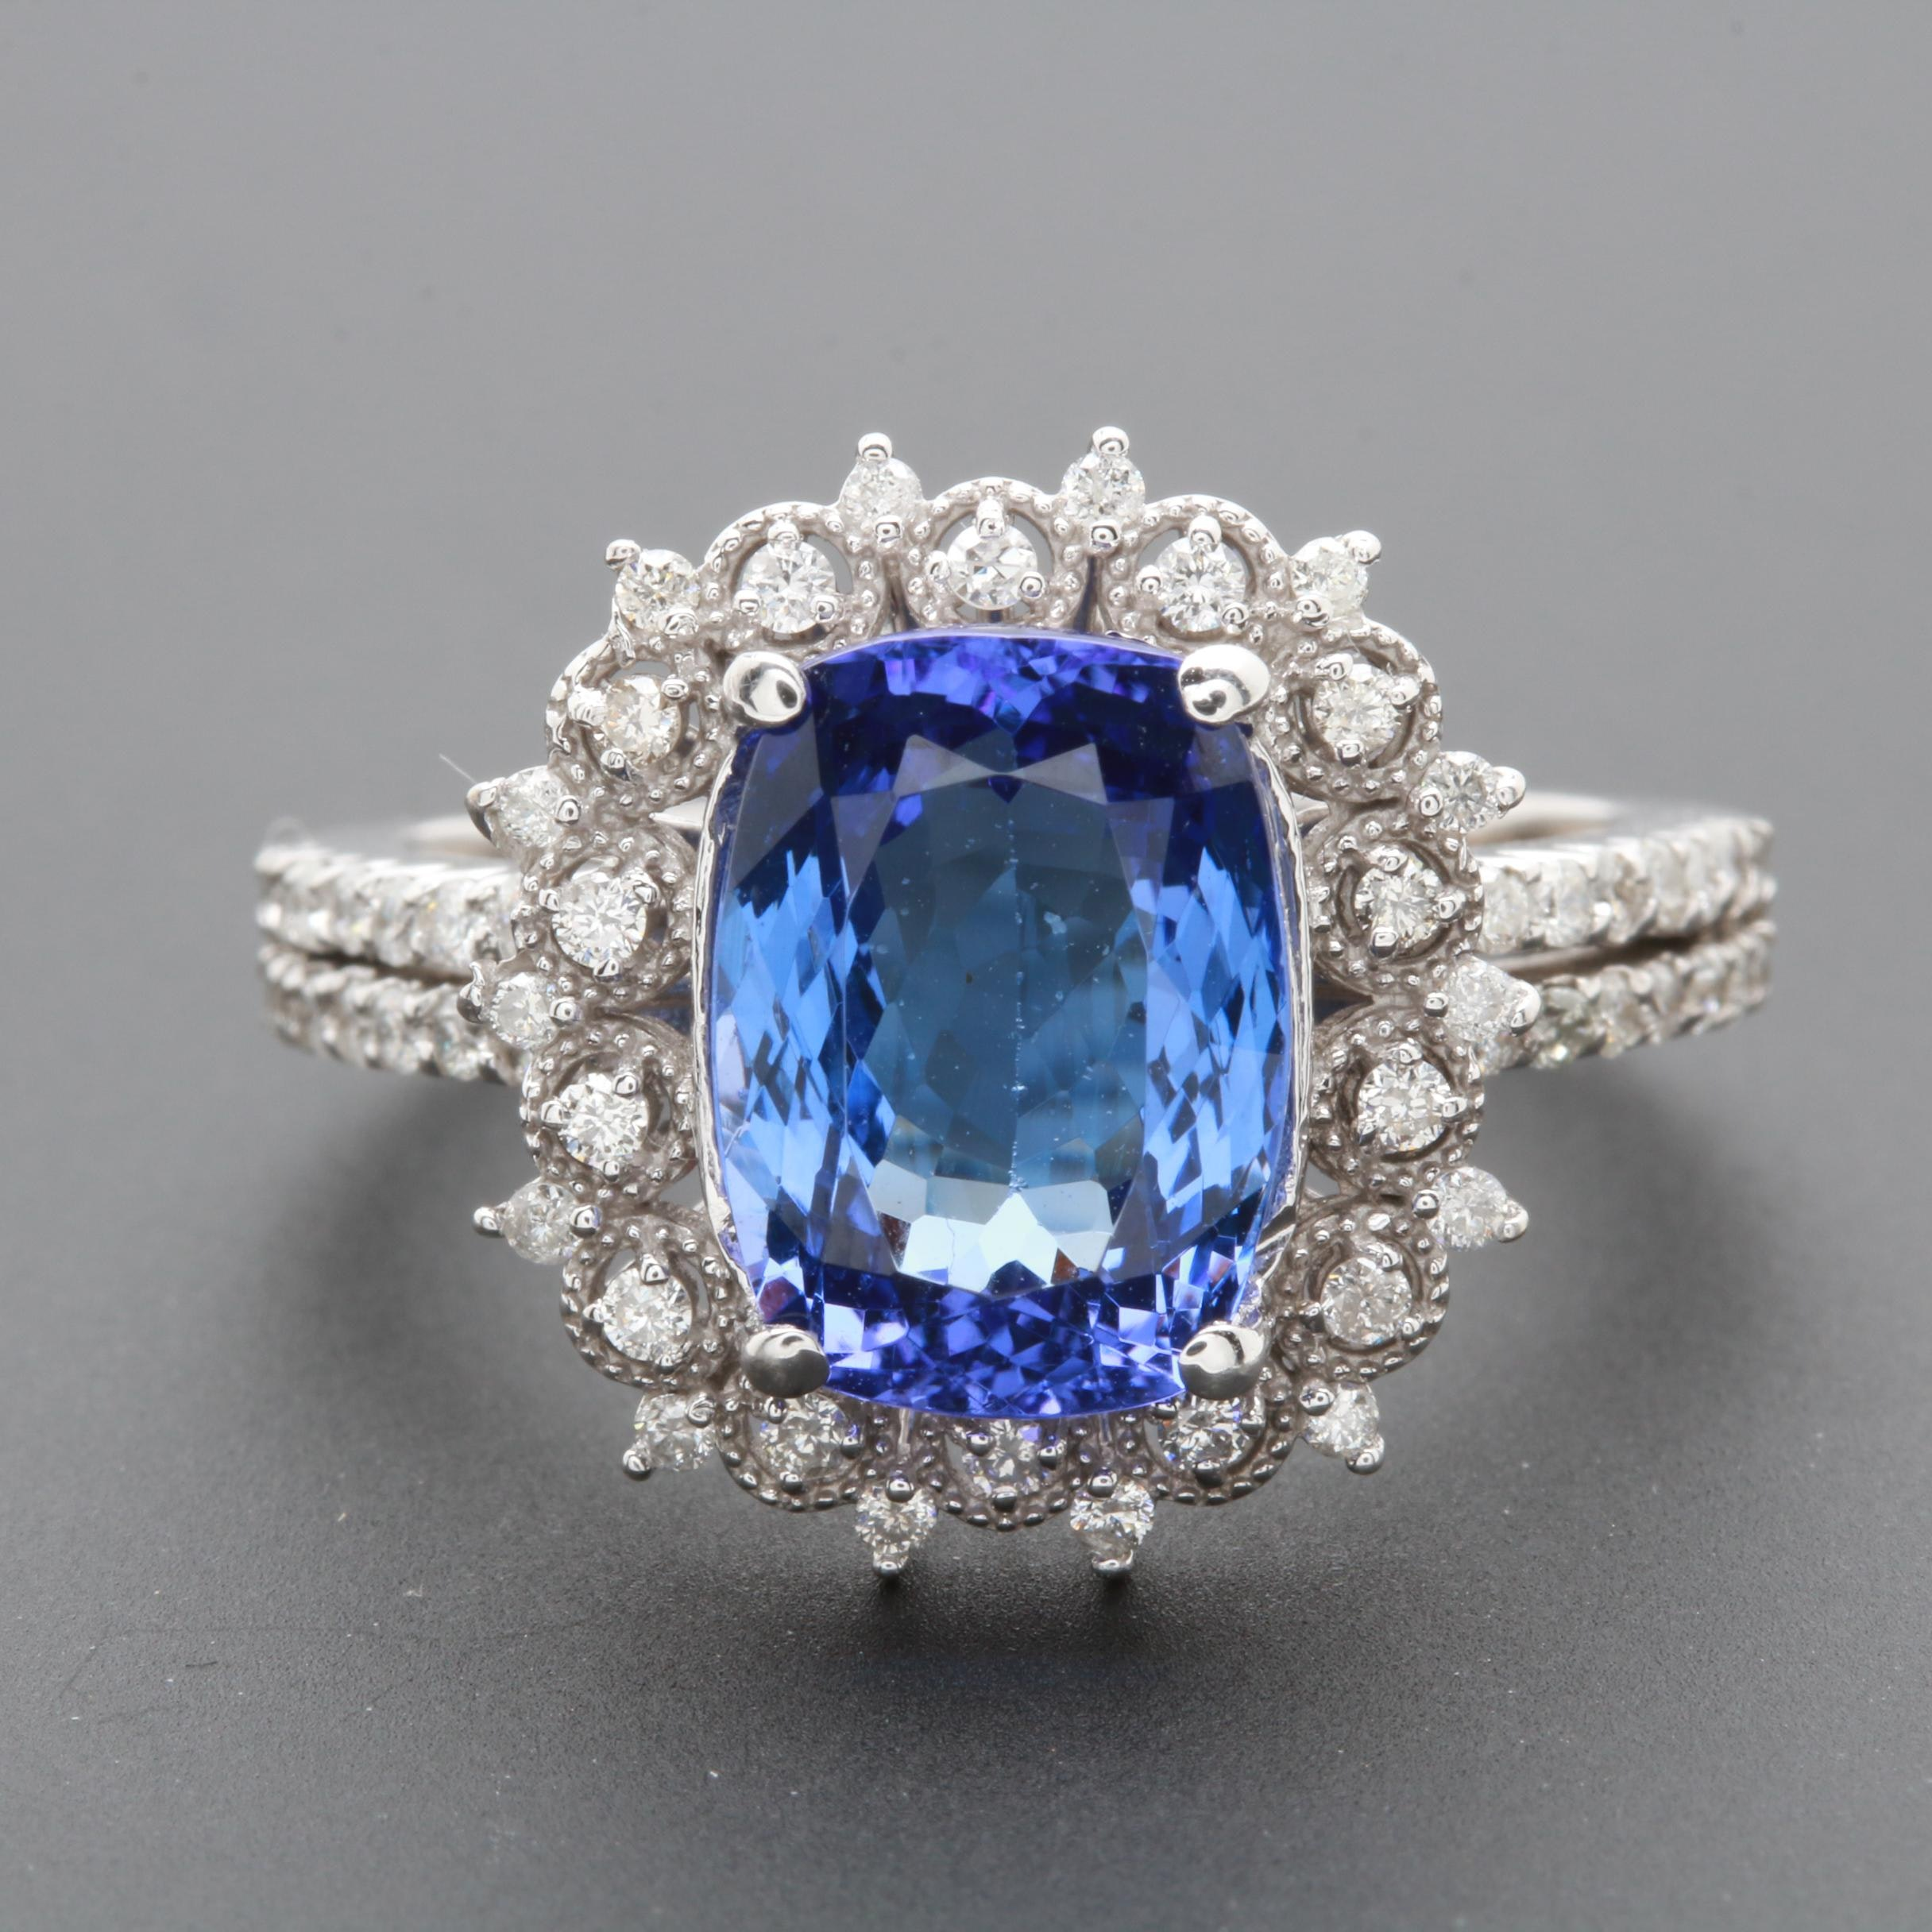 14K White Gold 3.29 CT Tanzanite and Diamond Ring